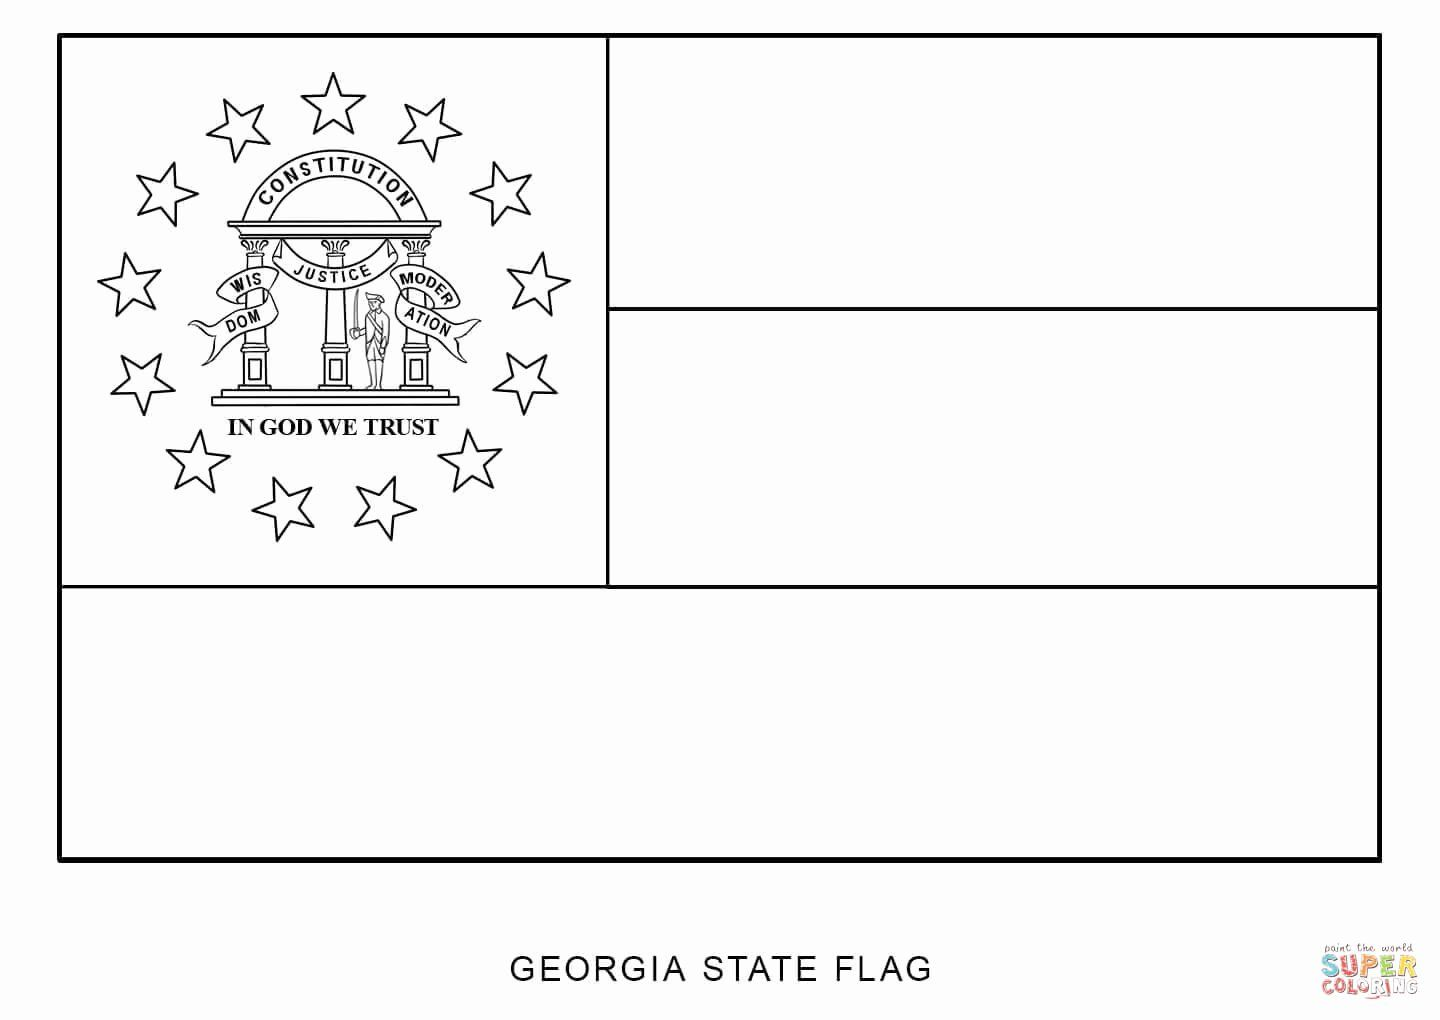 Liberty Bell Coloring Pages Fresh Coloring Pages And Books United States Flag Coloring Page In 2020 Flag Coloring Pages Georgia Flag United States Flag